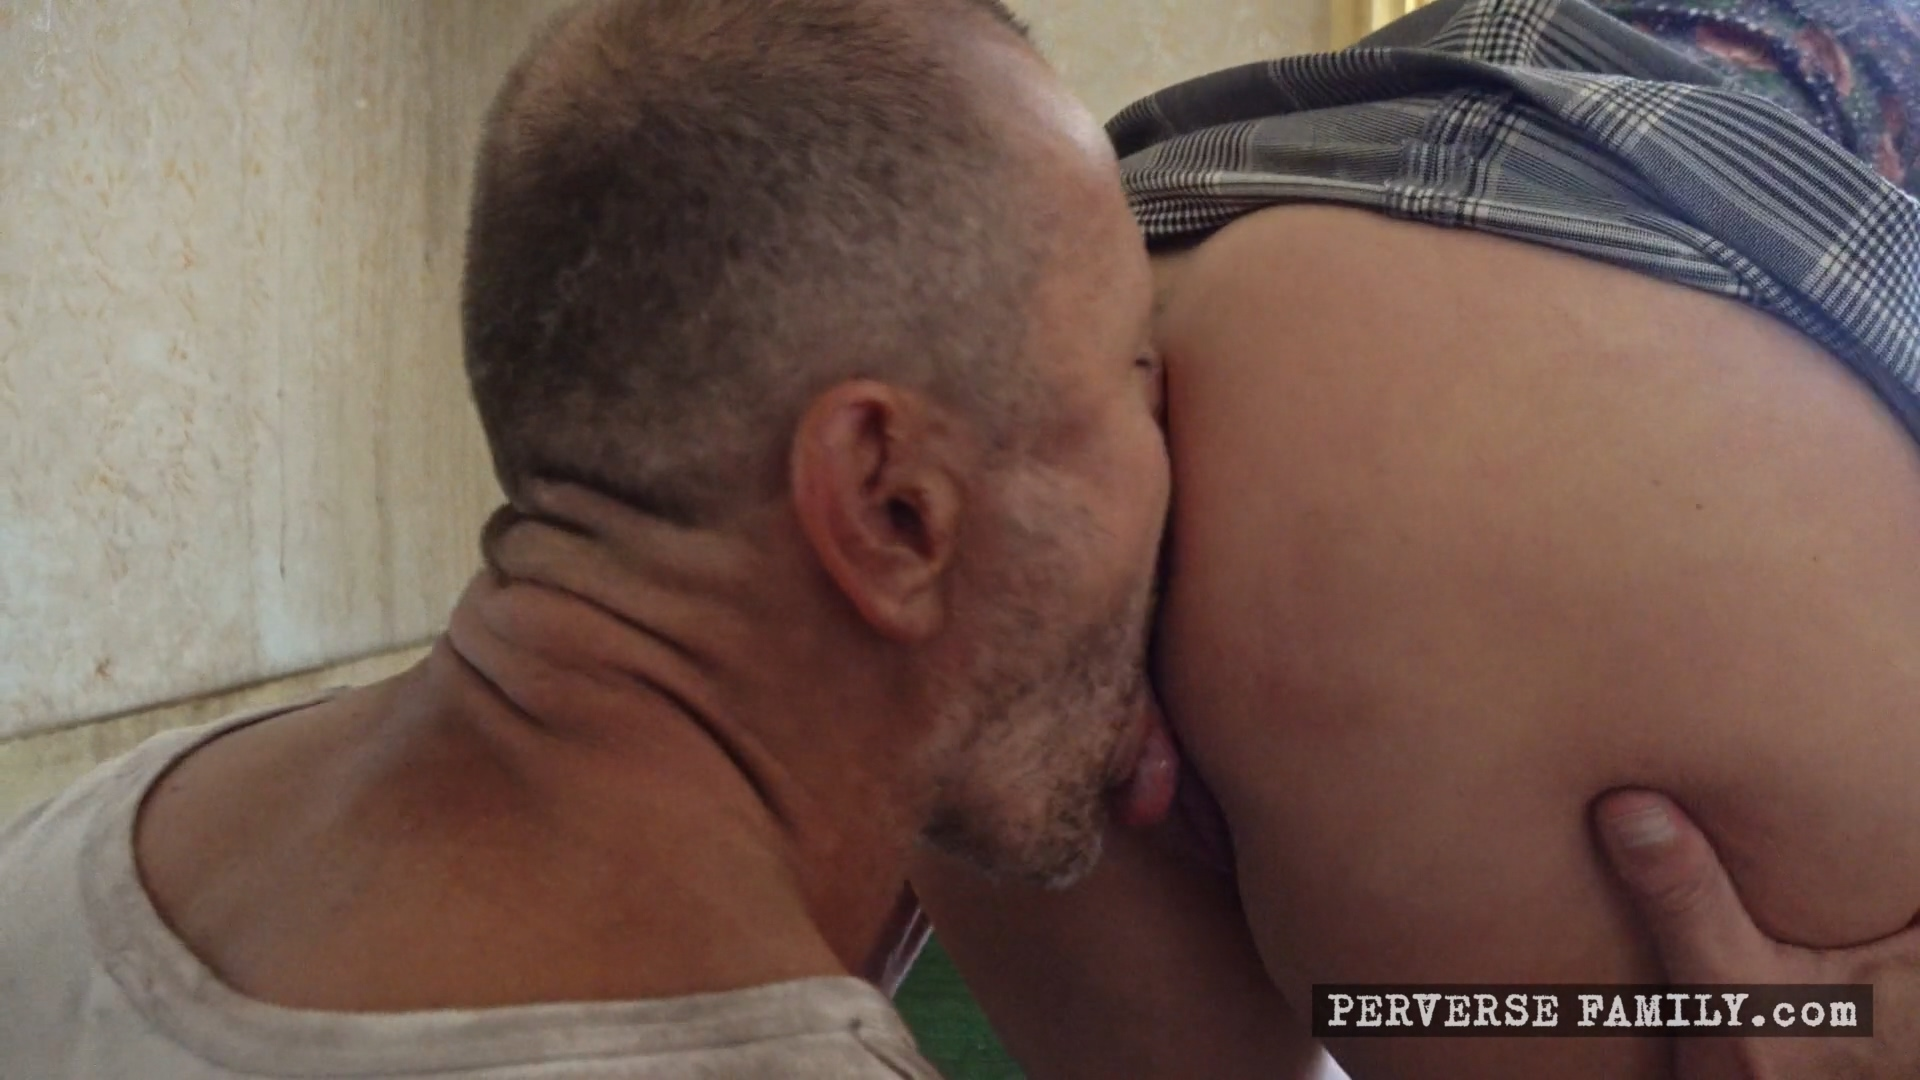 perverse-family-surprise-for-the-family-1920x1080_mp4_20191119_093223_053.jpg